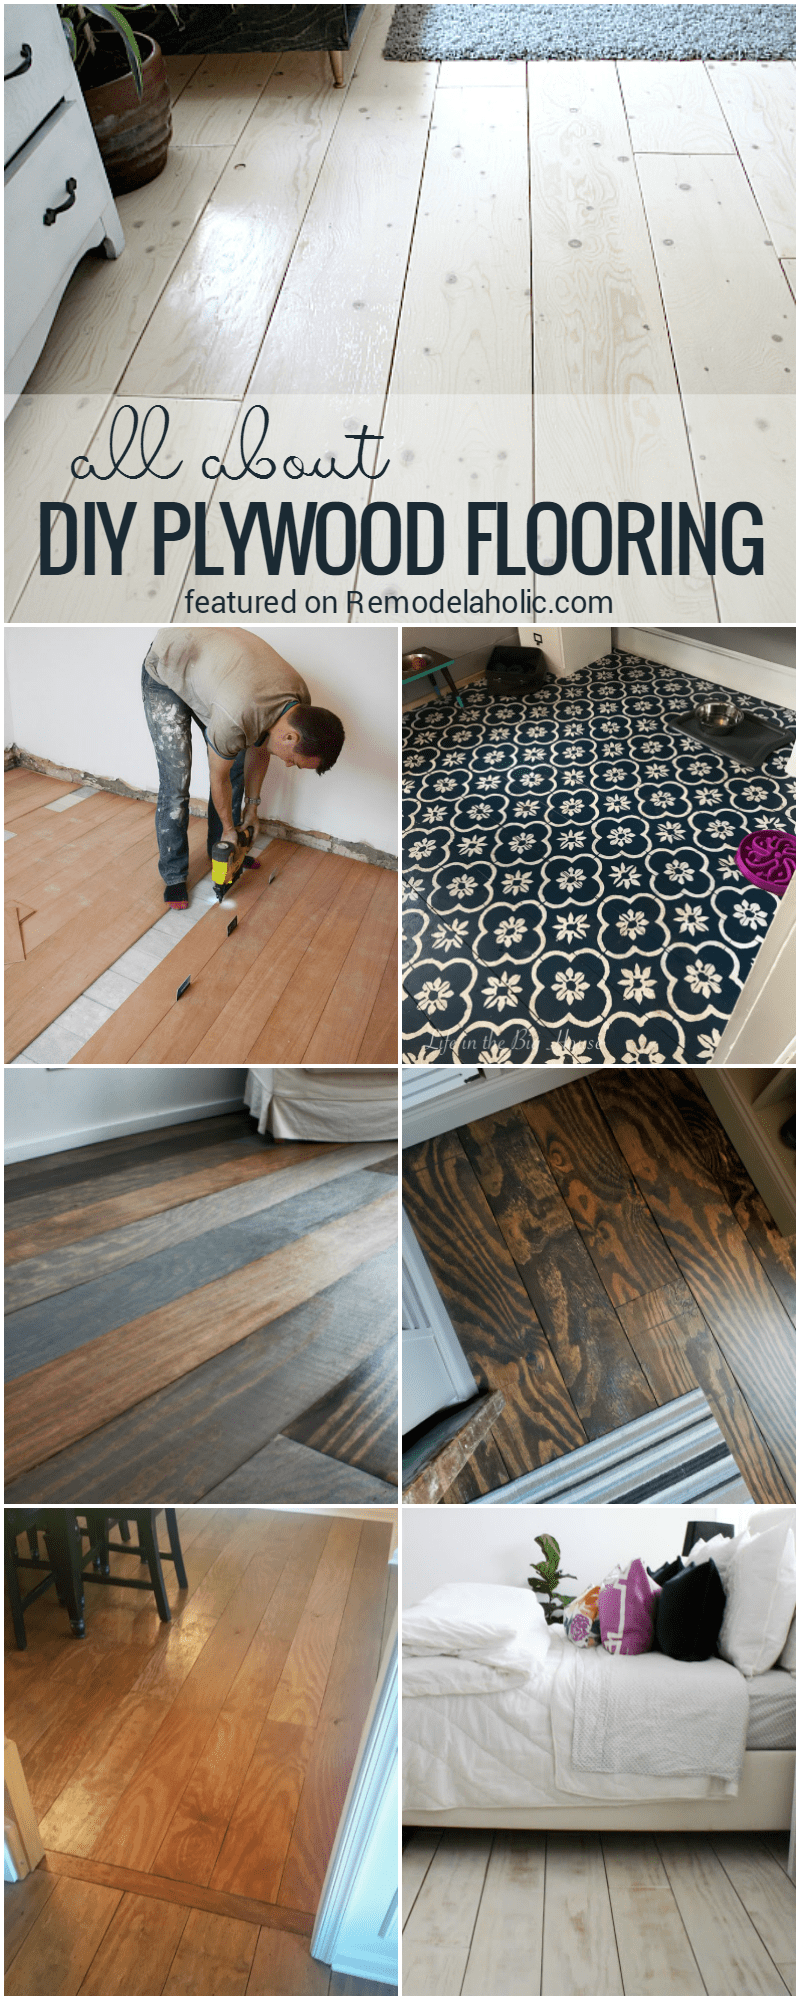 All About DIY Planked Plywood Flooring: Tips And FAQs About Installation,  Durability, And